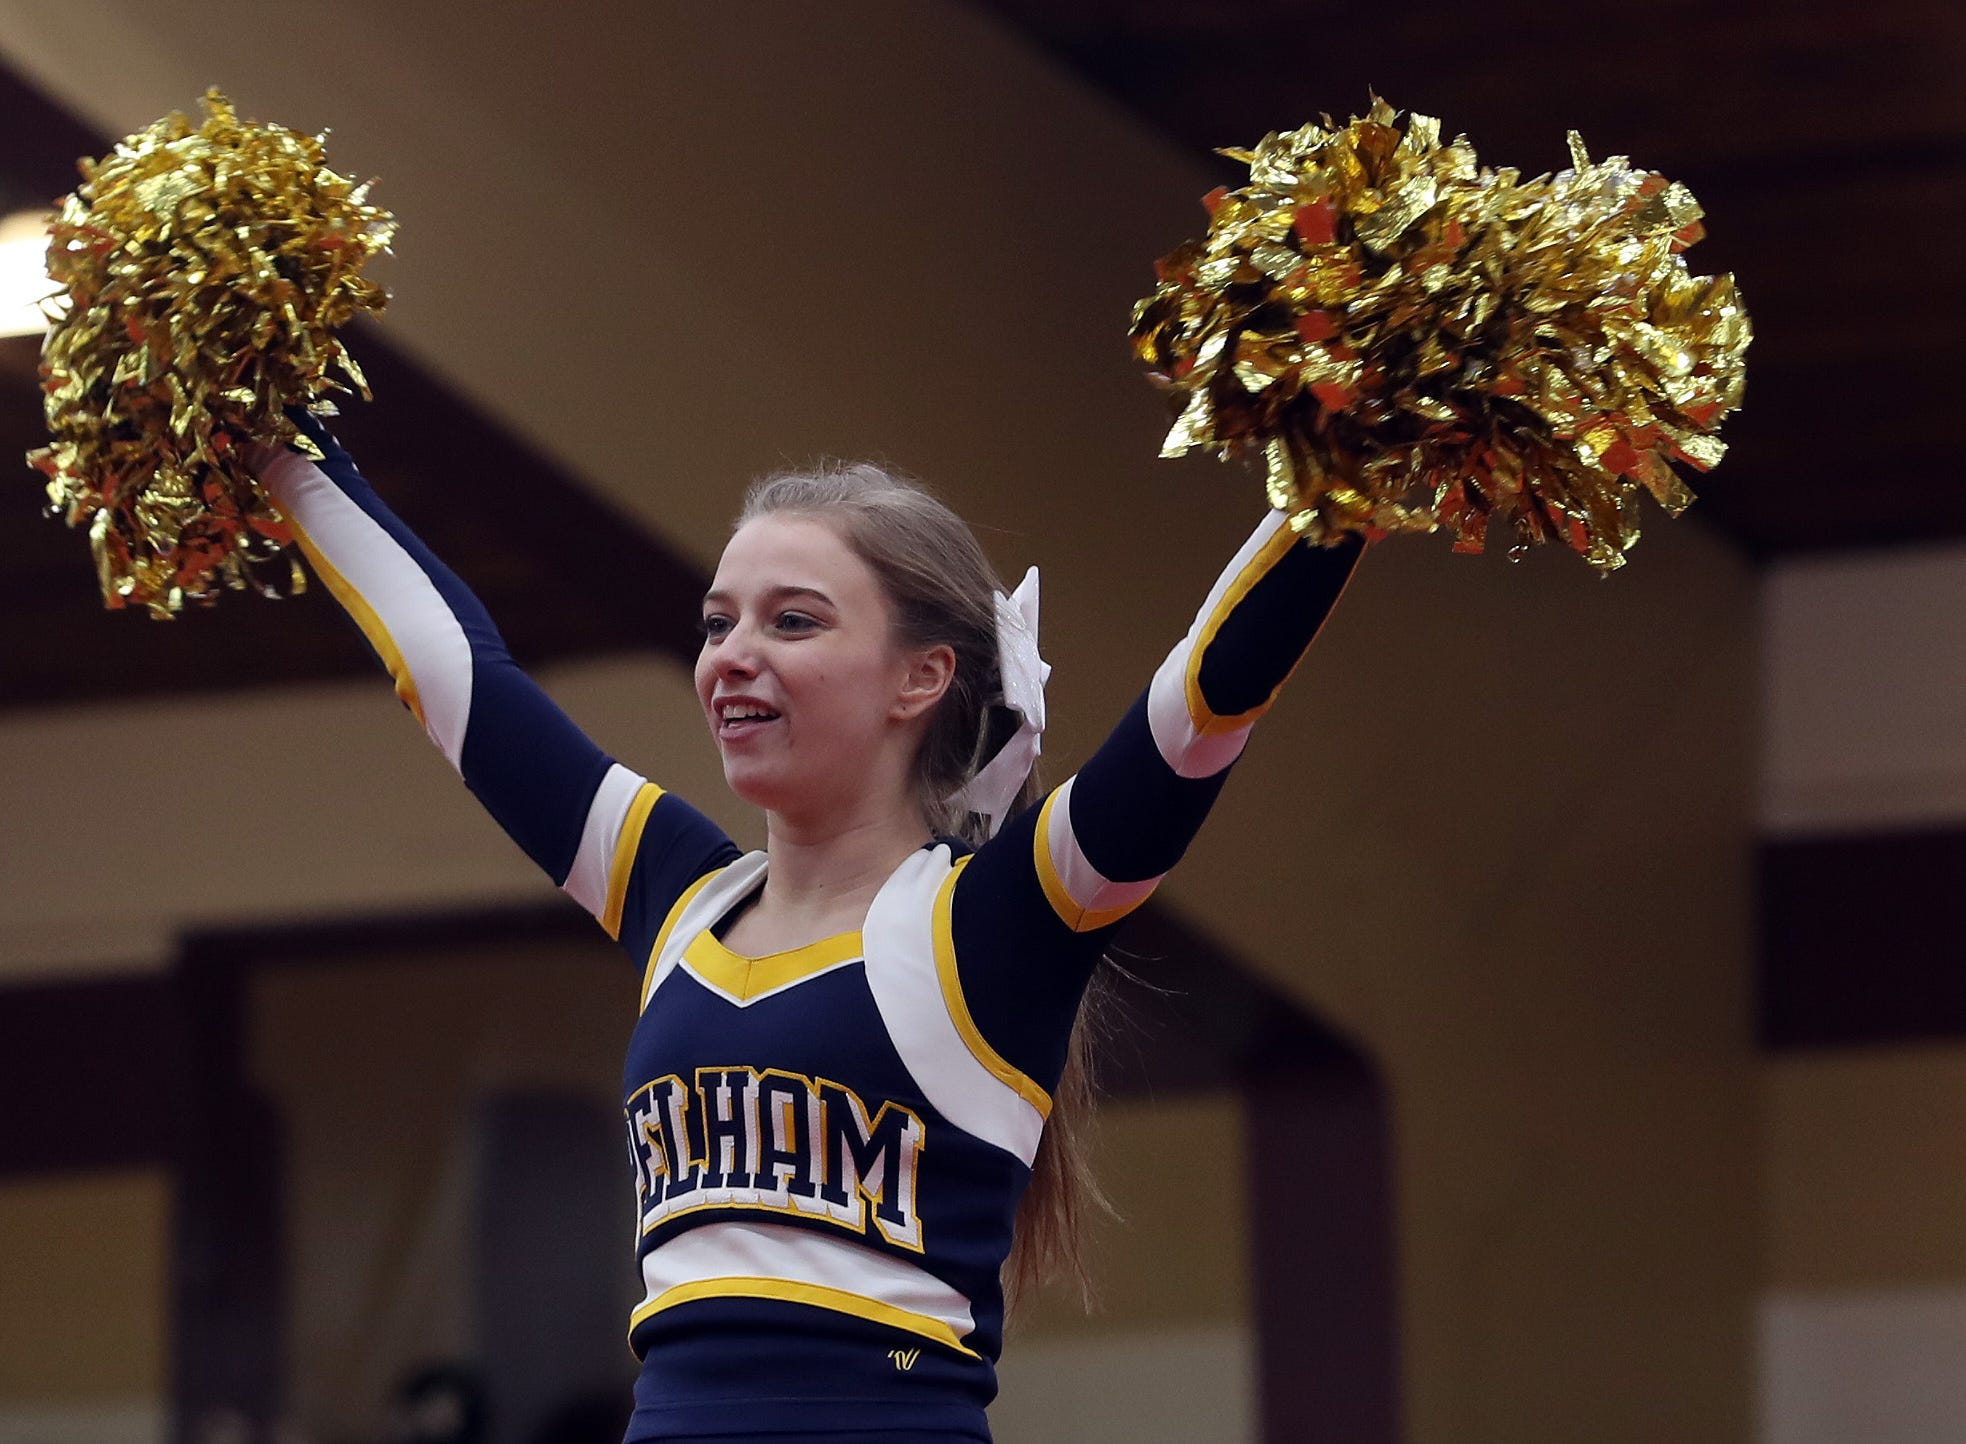 Pelham High School competes during the Section 1 cheerleading championships at Arlington High School in Freedom Plains Feb. 16, 2019.